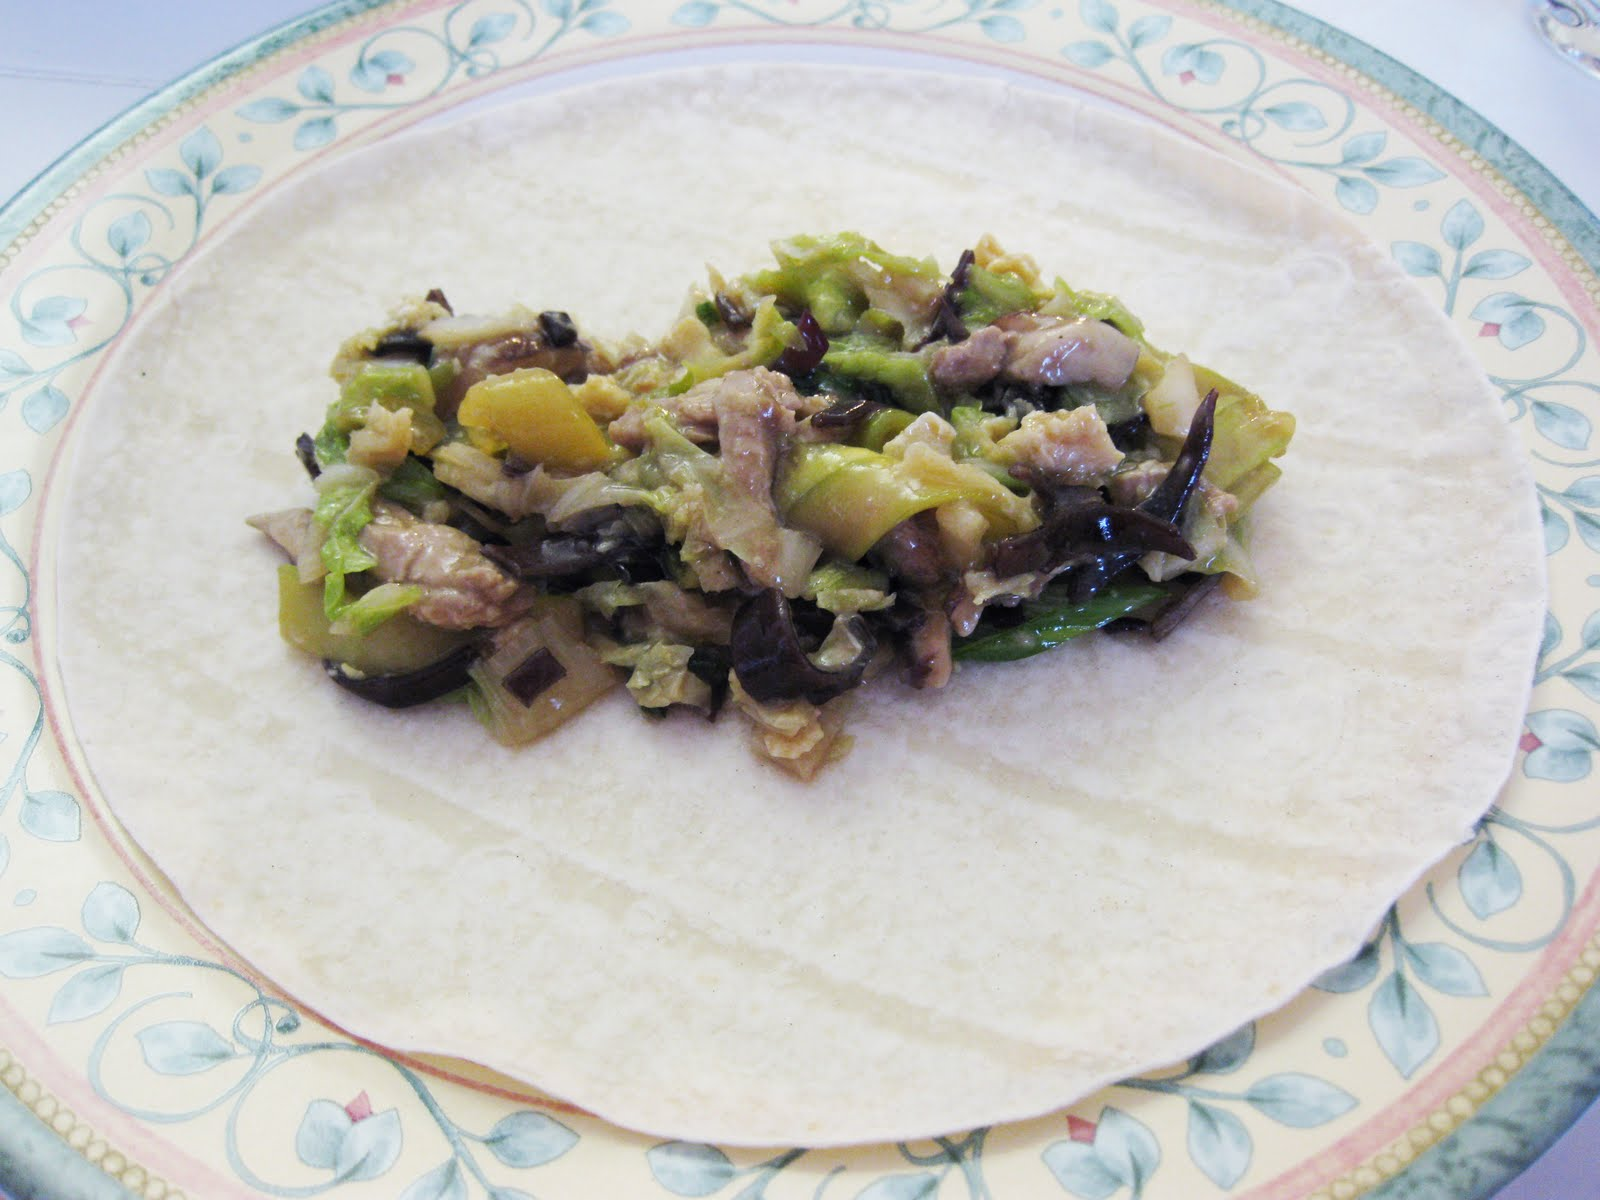 moo shu pork, garnished with scallions